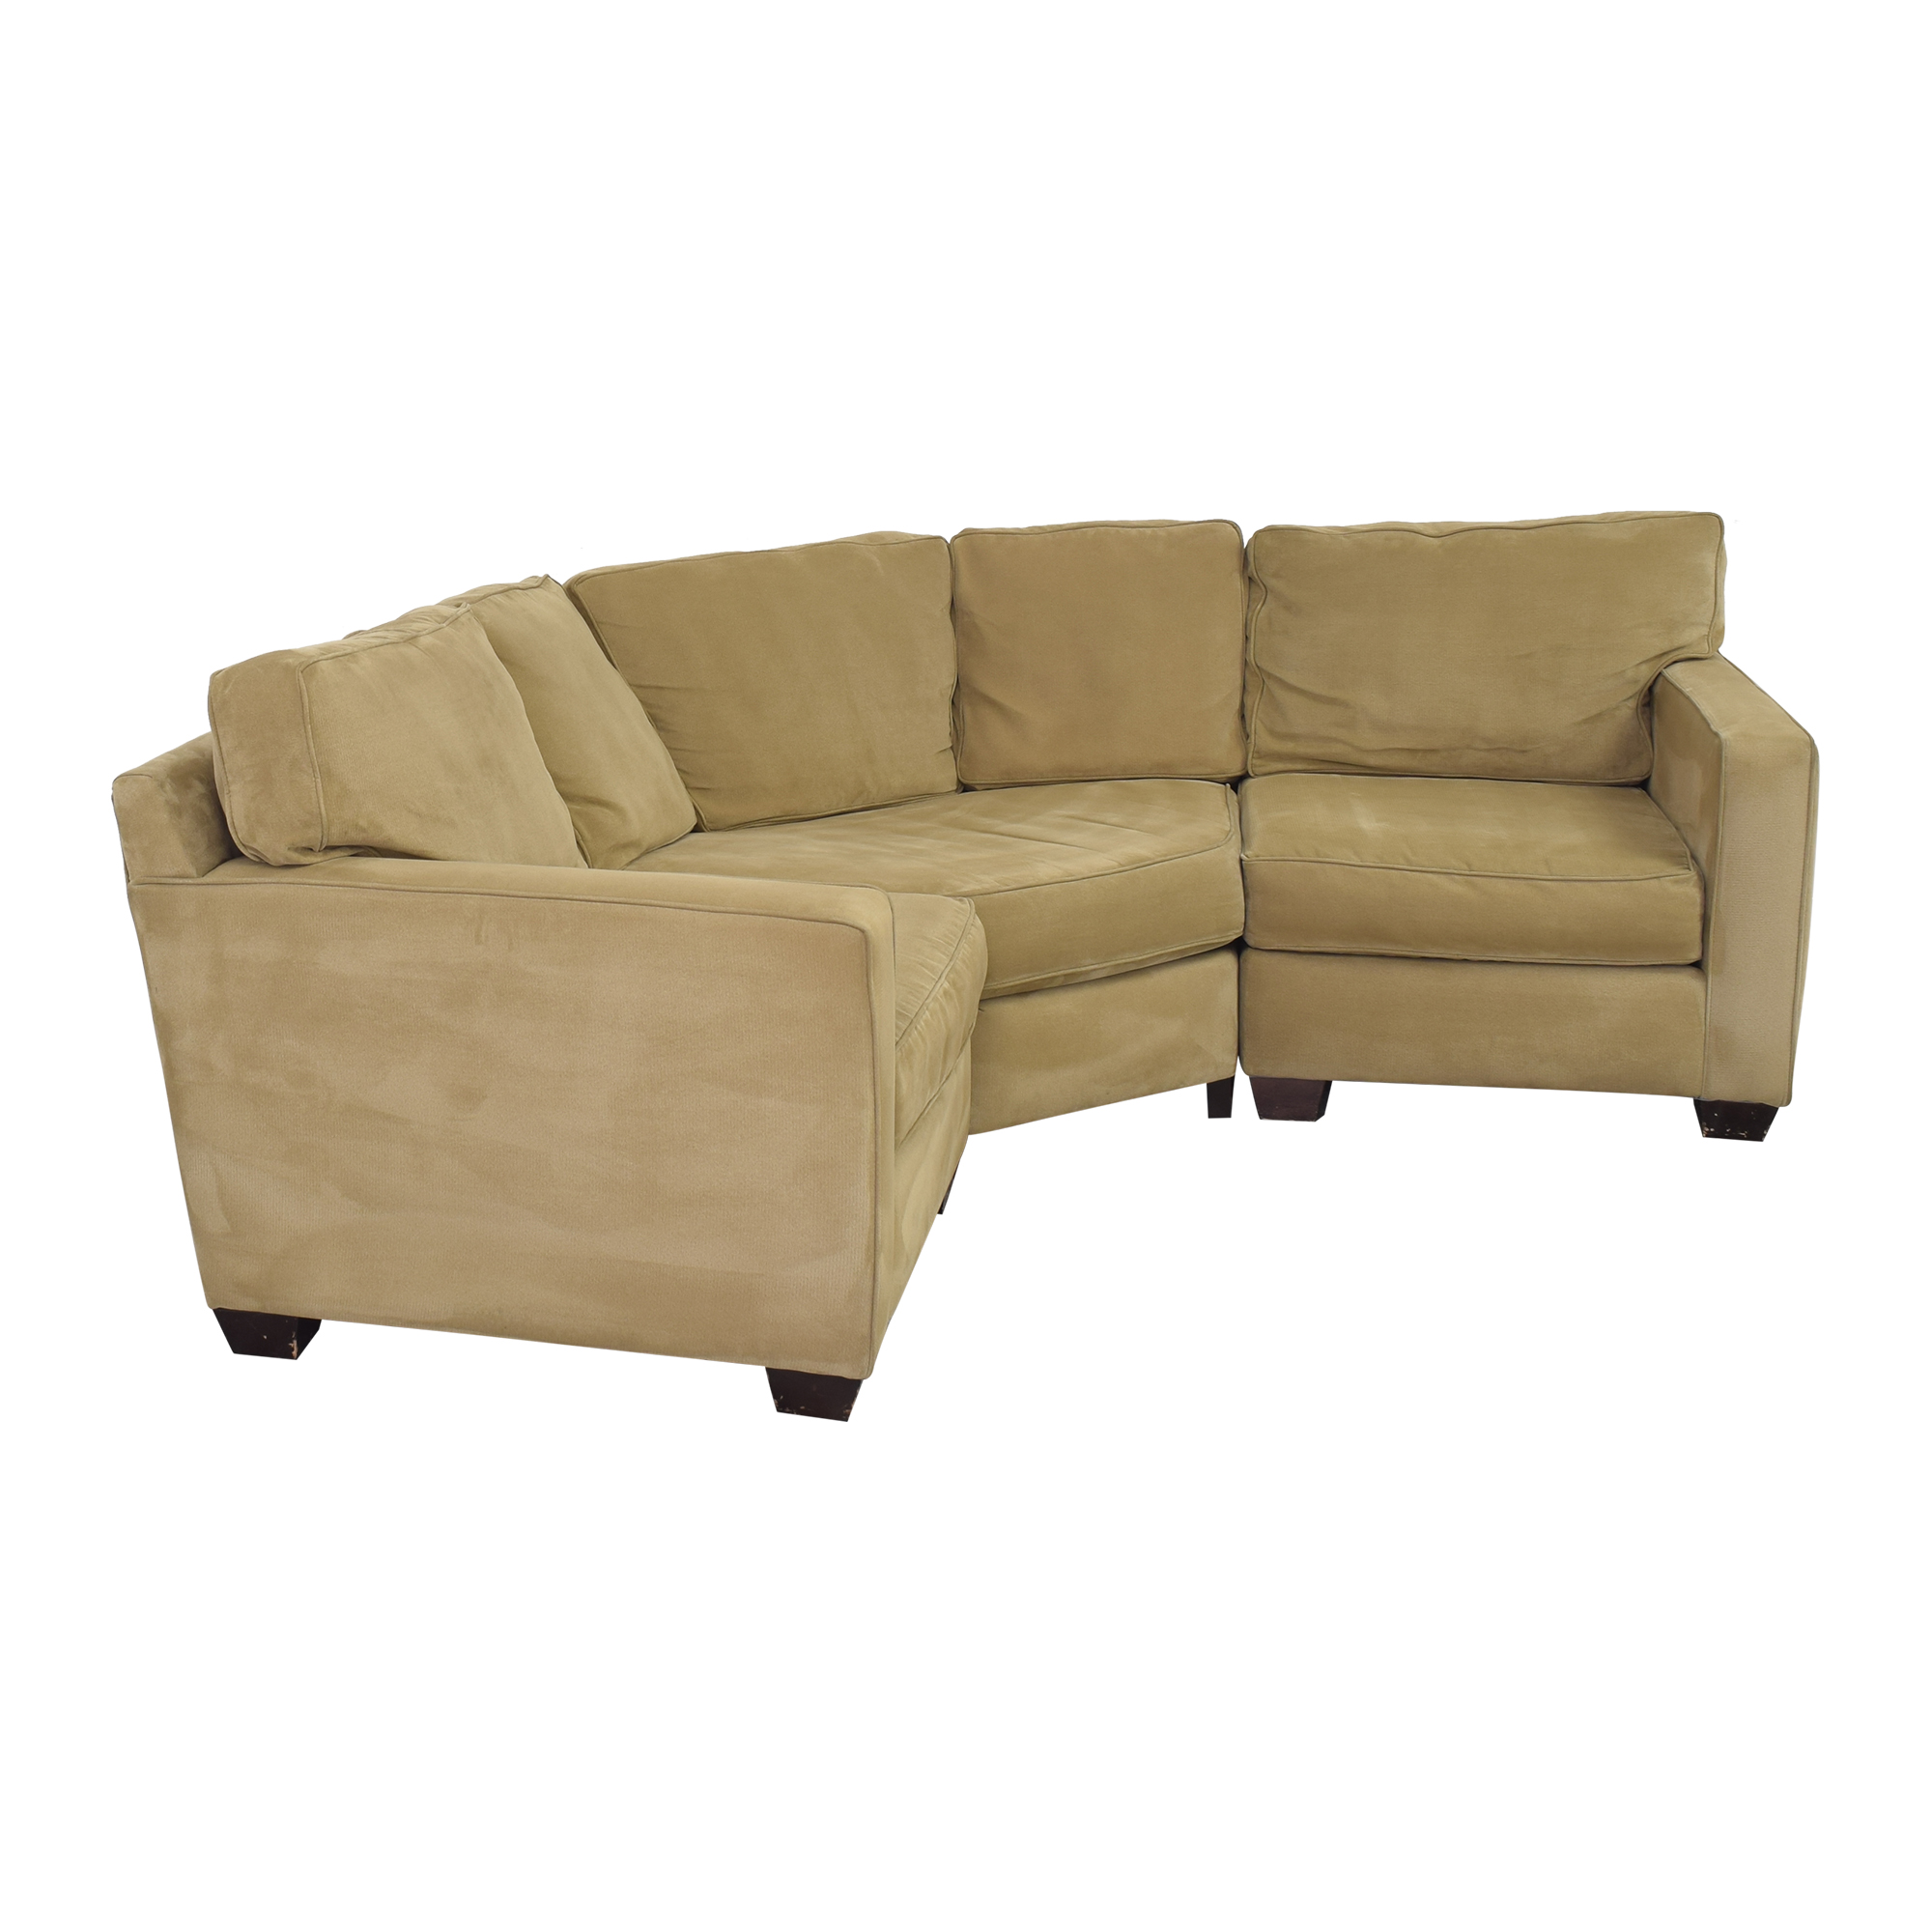 Jonathan Louis Jonathan Louis Corner Sectional Sofa second hand